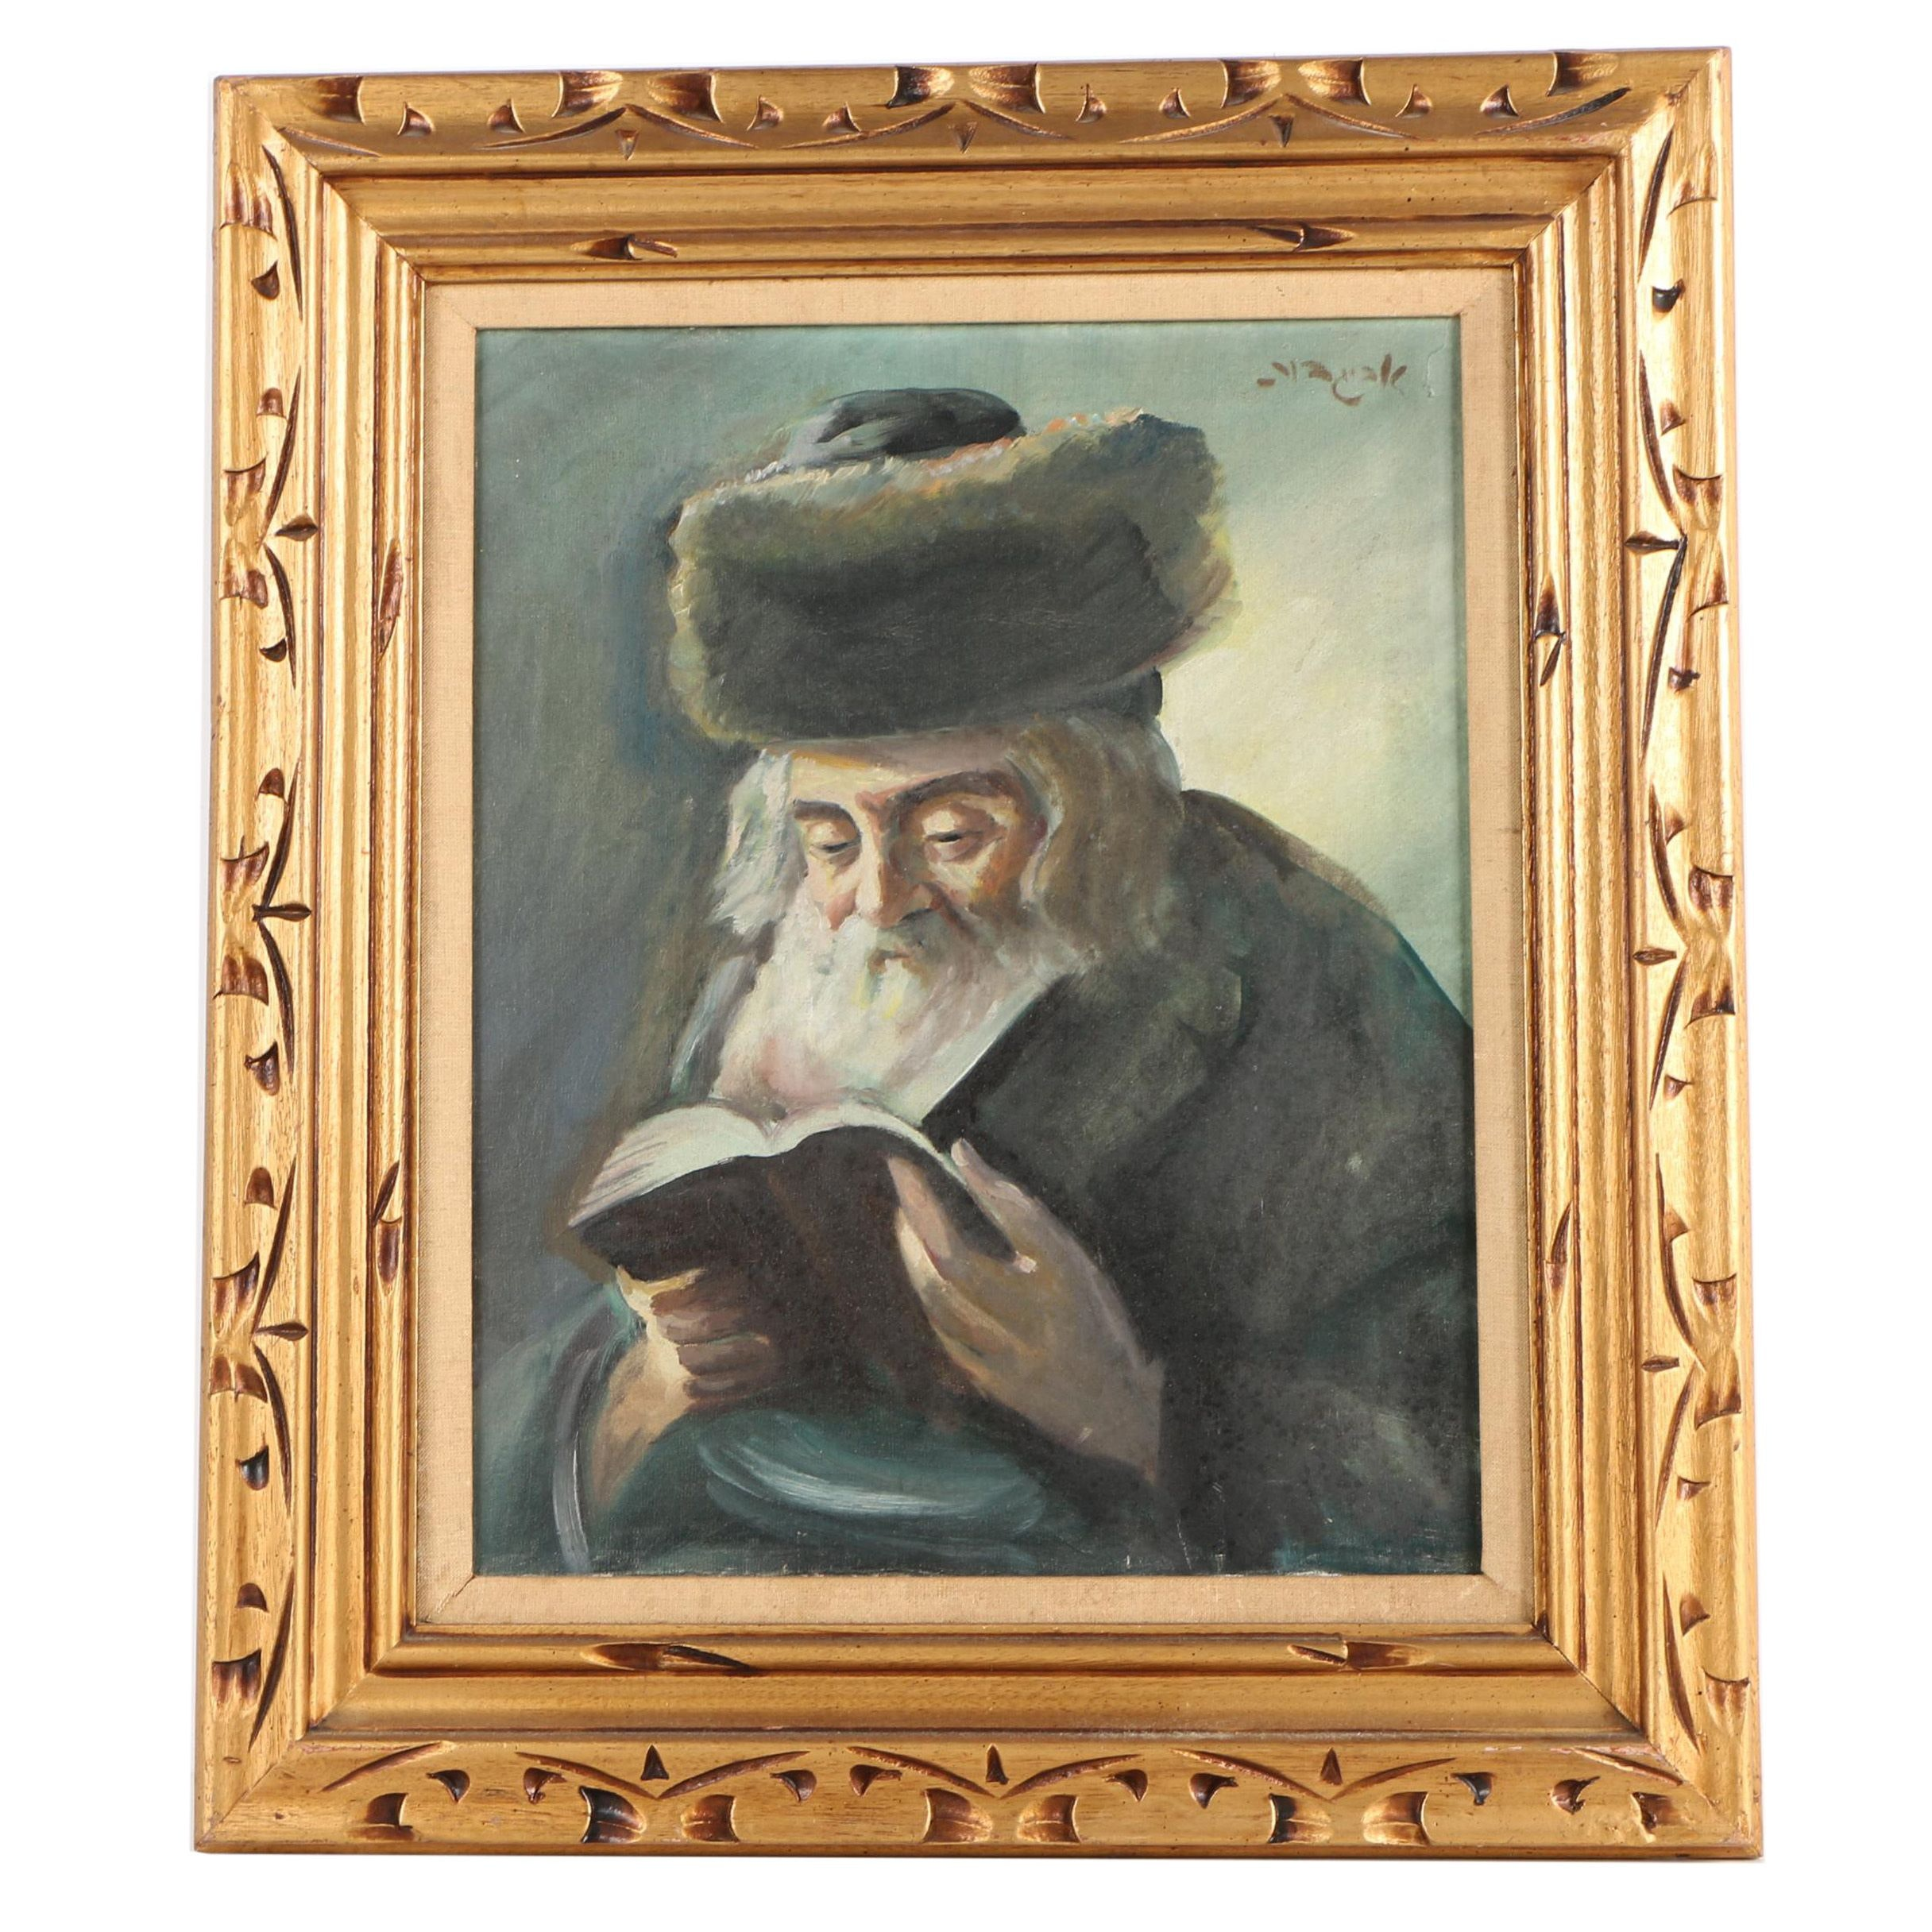 Oil Painting of a Man with Shtreimel